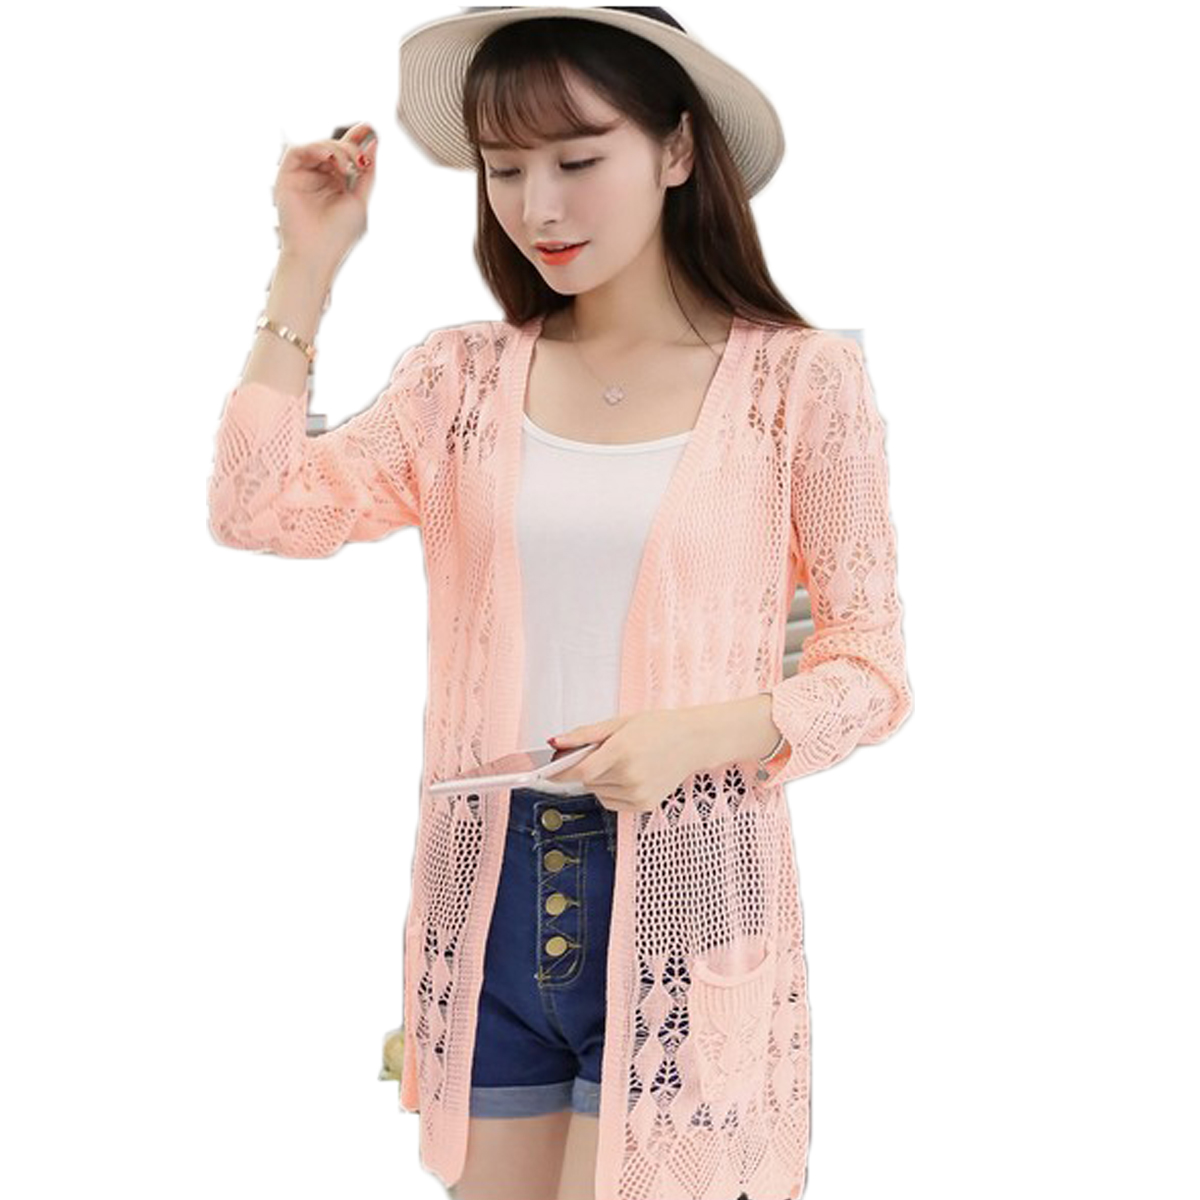 2017 Ladies Crochet Tops Summer Hollow Out Knitted Sweaters Cardigan  Rebecas Mujer Fashion Women Beach Cardigan - Online Get Cheap Summer Cardigan For Women -Aliexpress.com